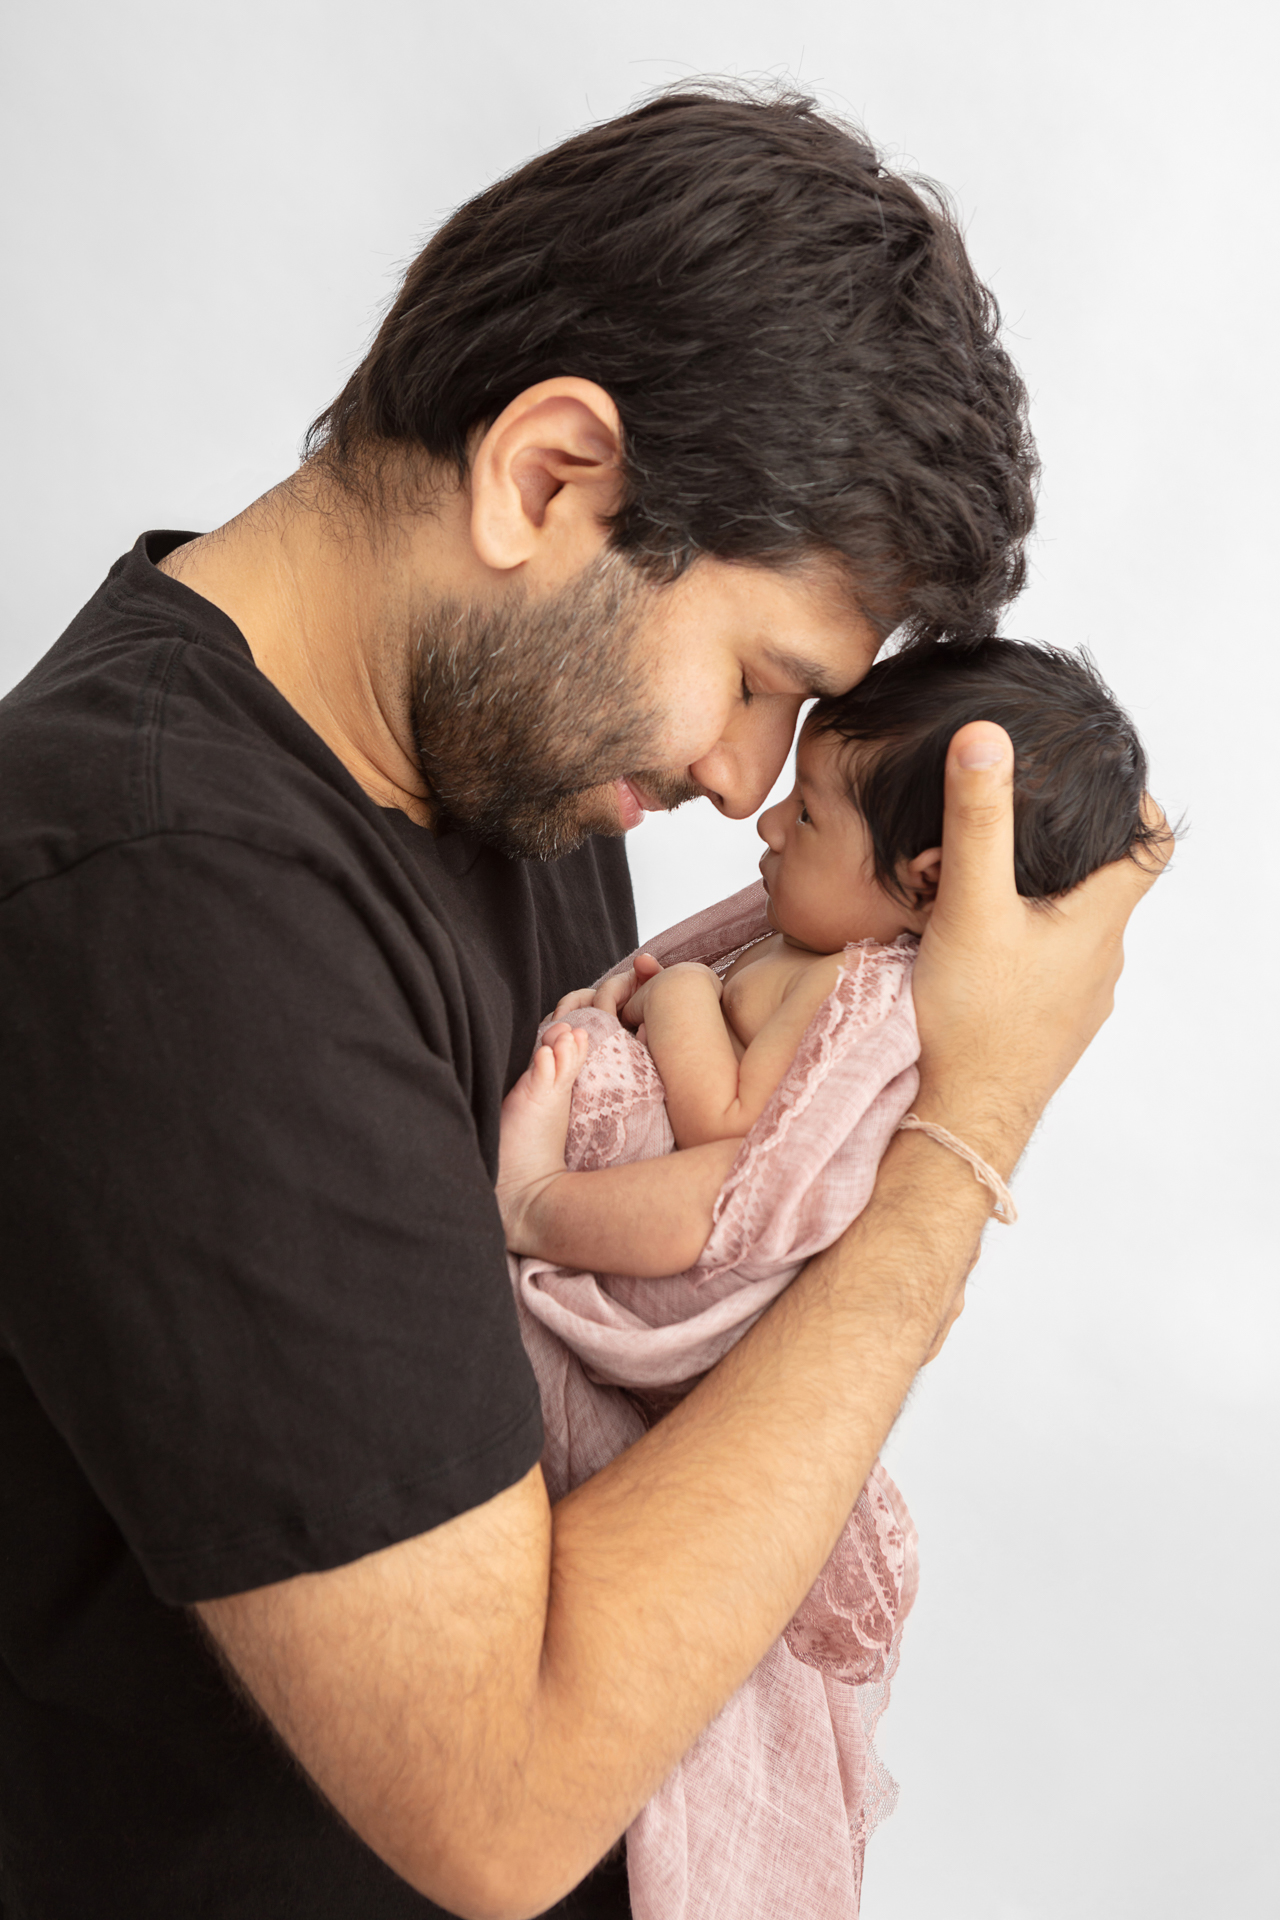 new father leaning his head down to touch foreheads with his newborn baby girl who has her eyes open